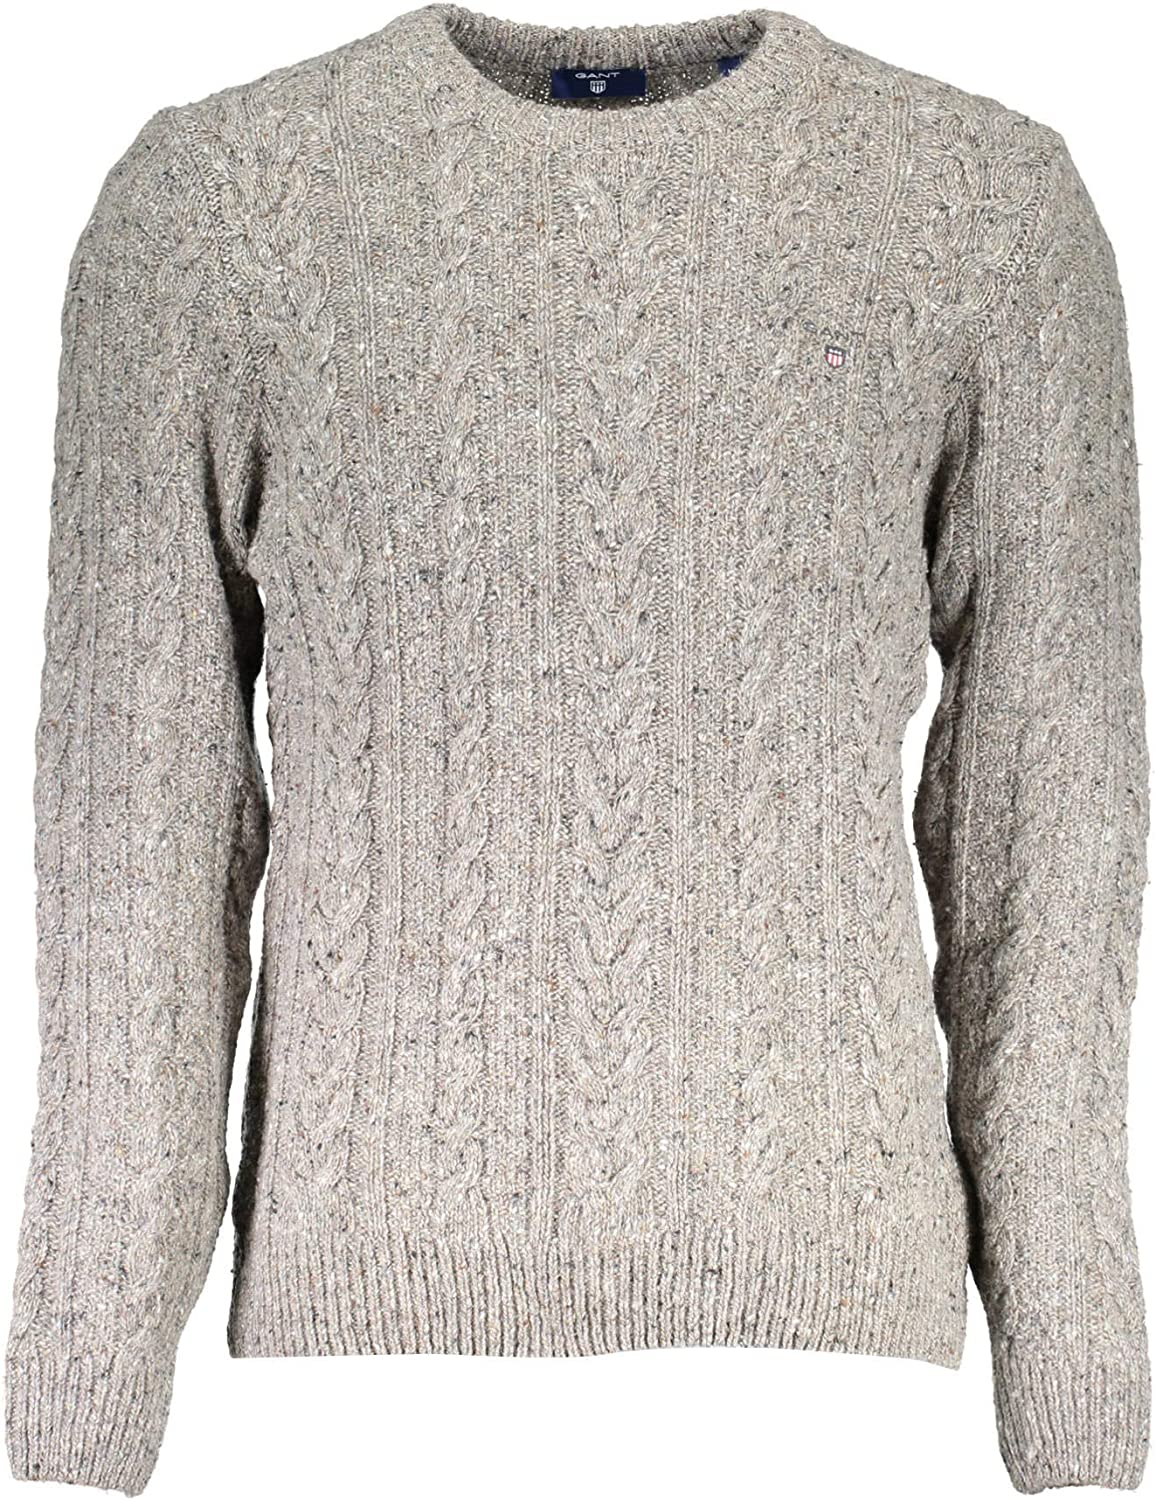 TALLA XX-Large. Gant Donegal Cable Equipo Mens suéter